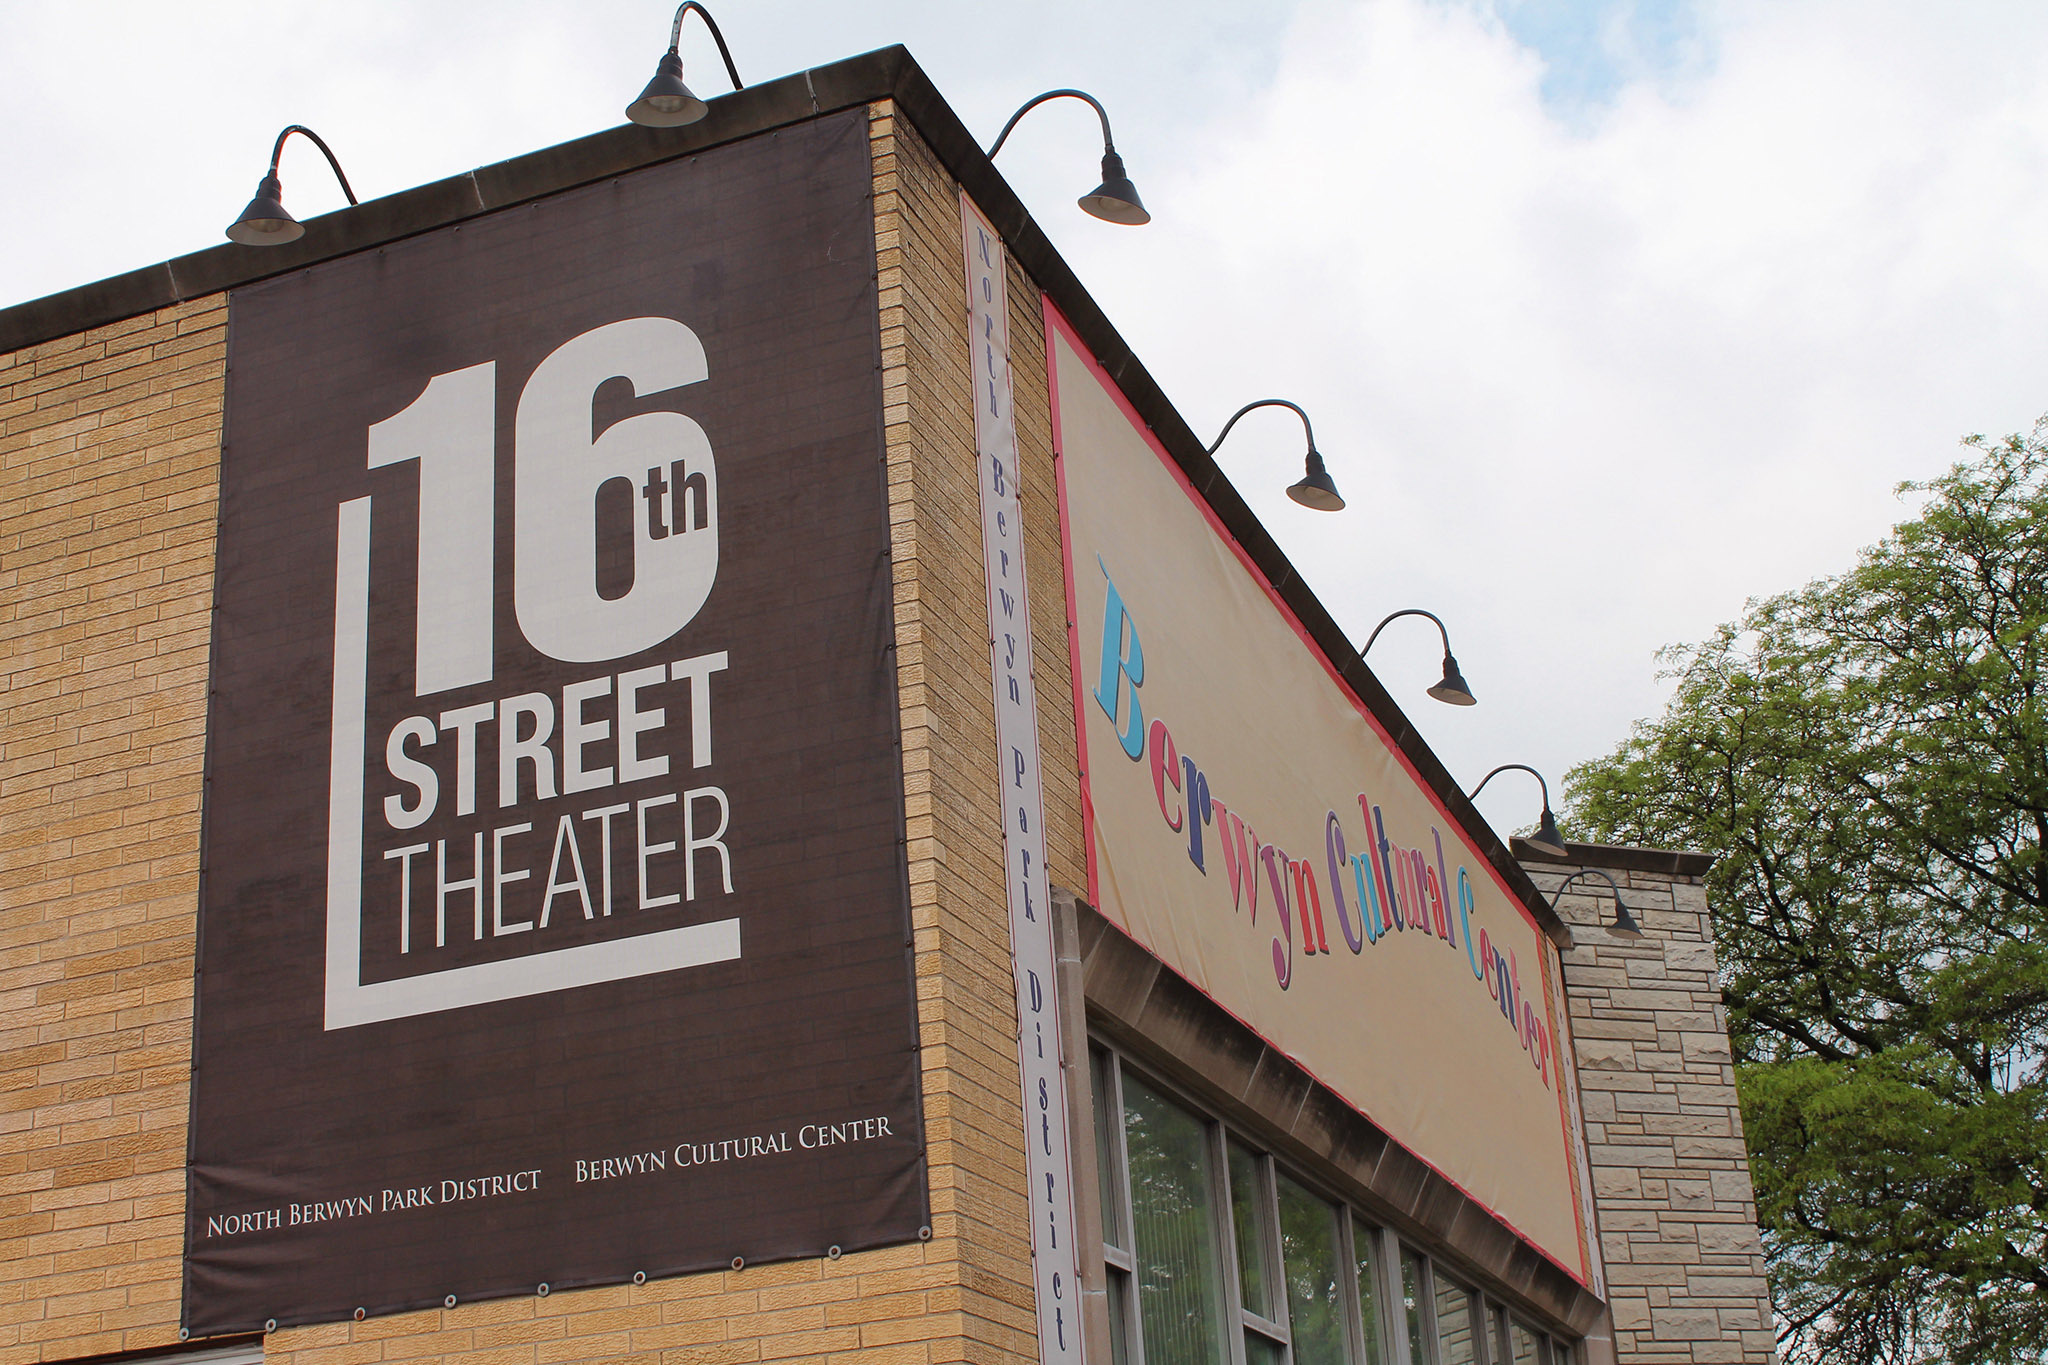 16th Street Theater